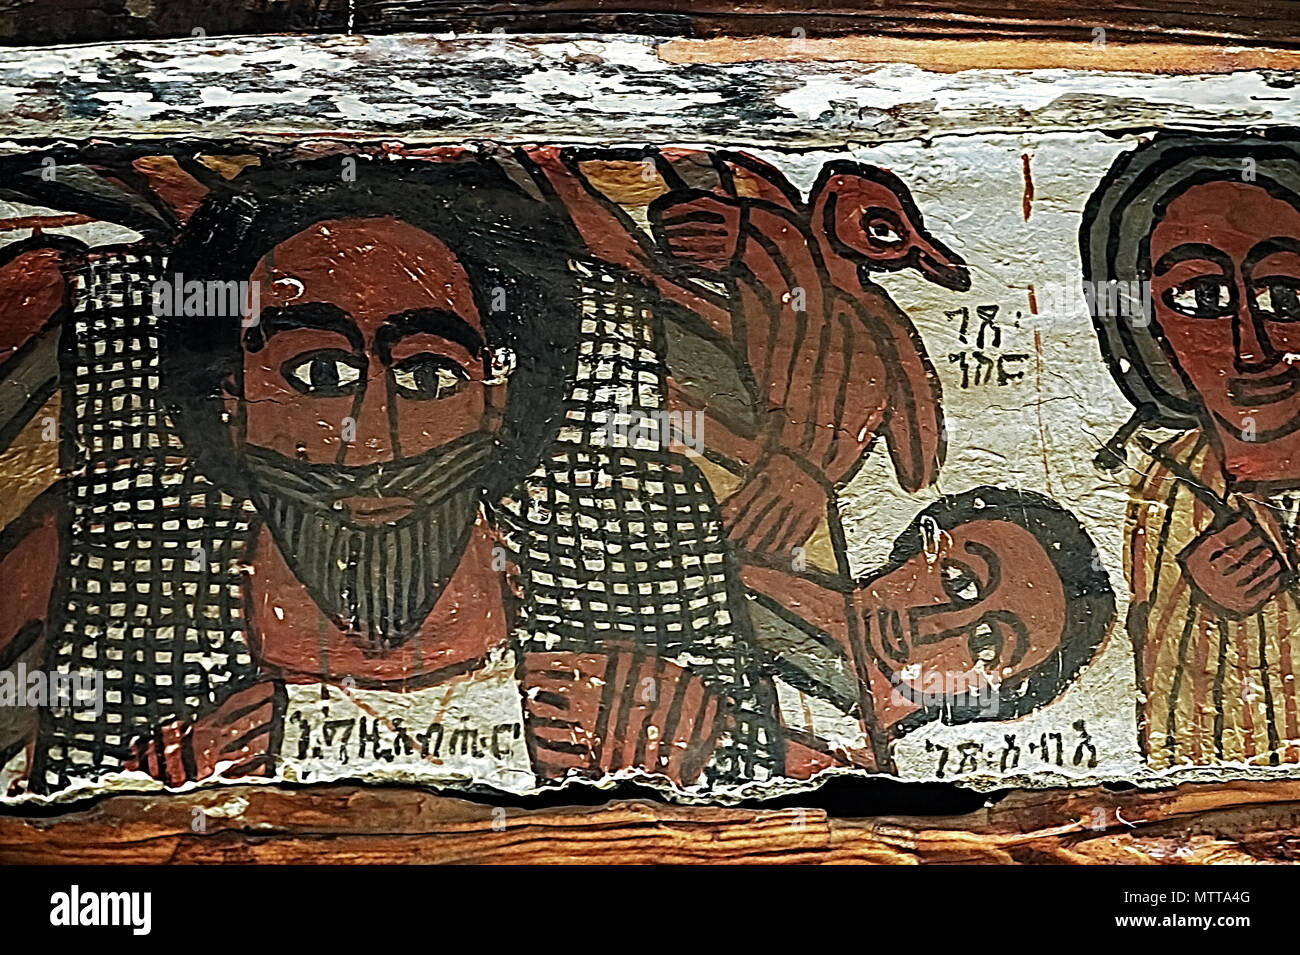 Jesus Christ surrounded by theTetramorph or Four Beasts, top right the eagle of St.John, rock-hewn church Petros and Paulus Melehayzengi, Ethiopia - Stock Image